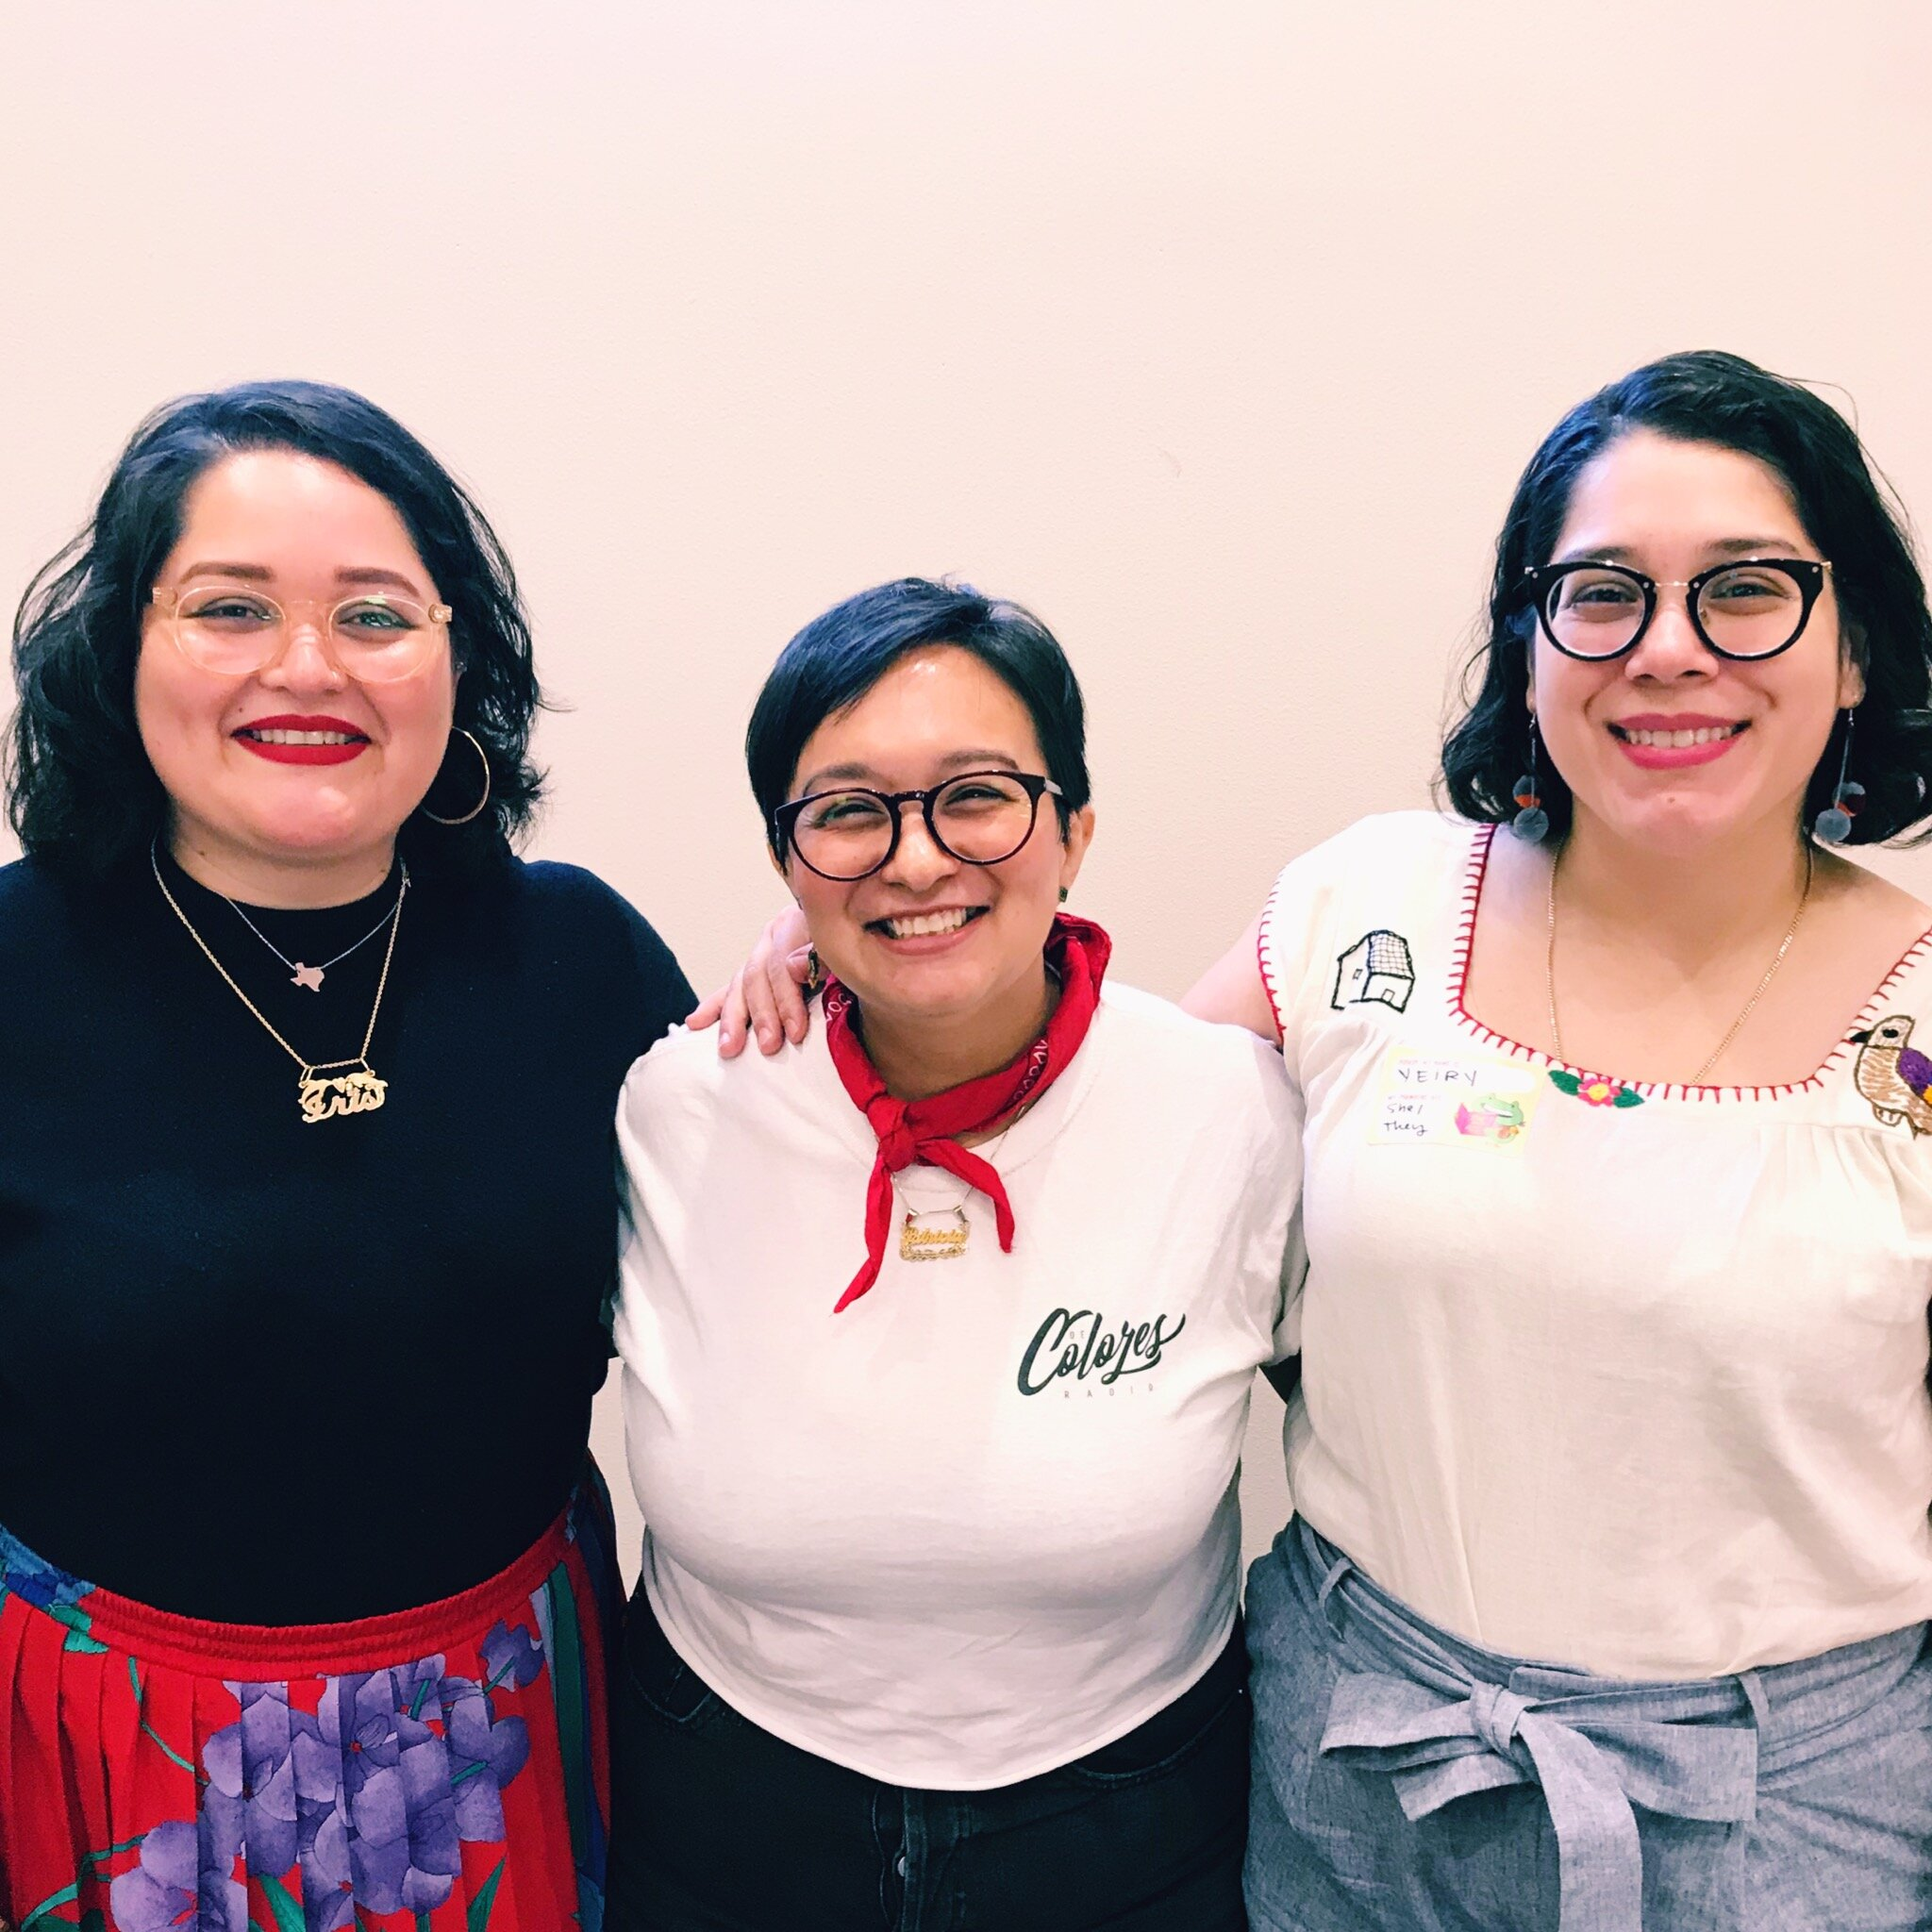 Sister, Pat from De Colores Collective and Me